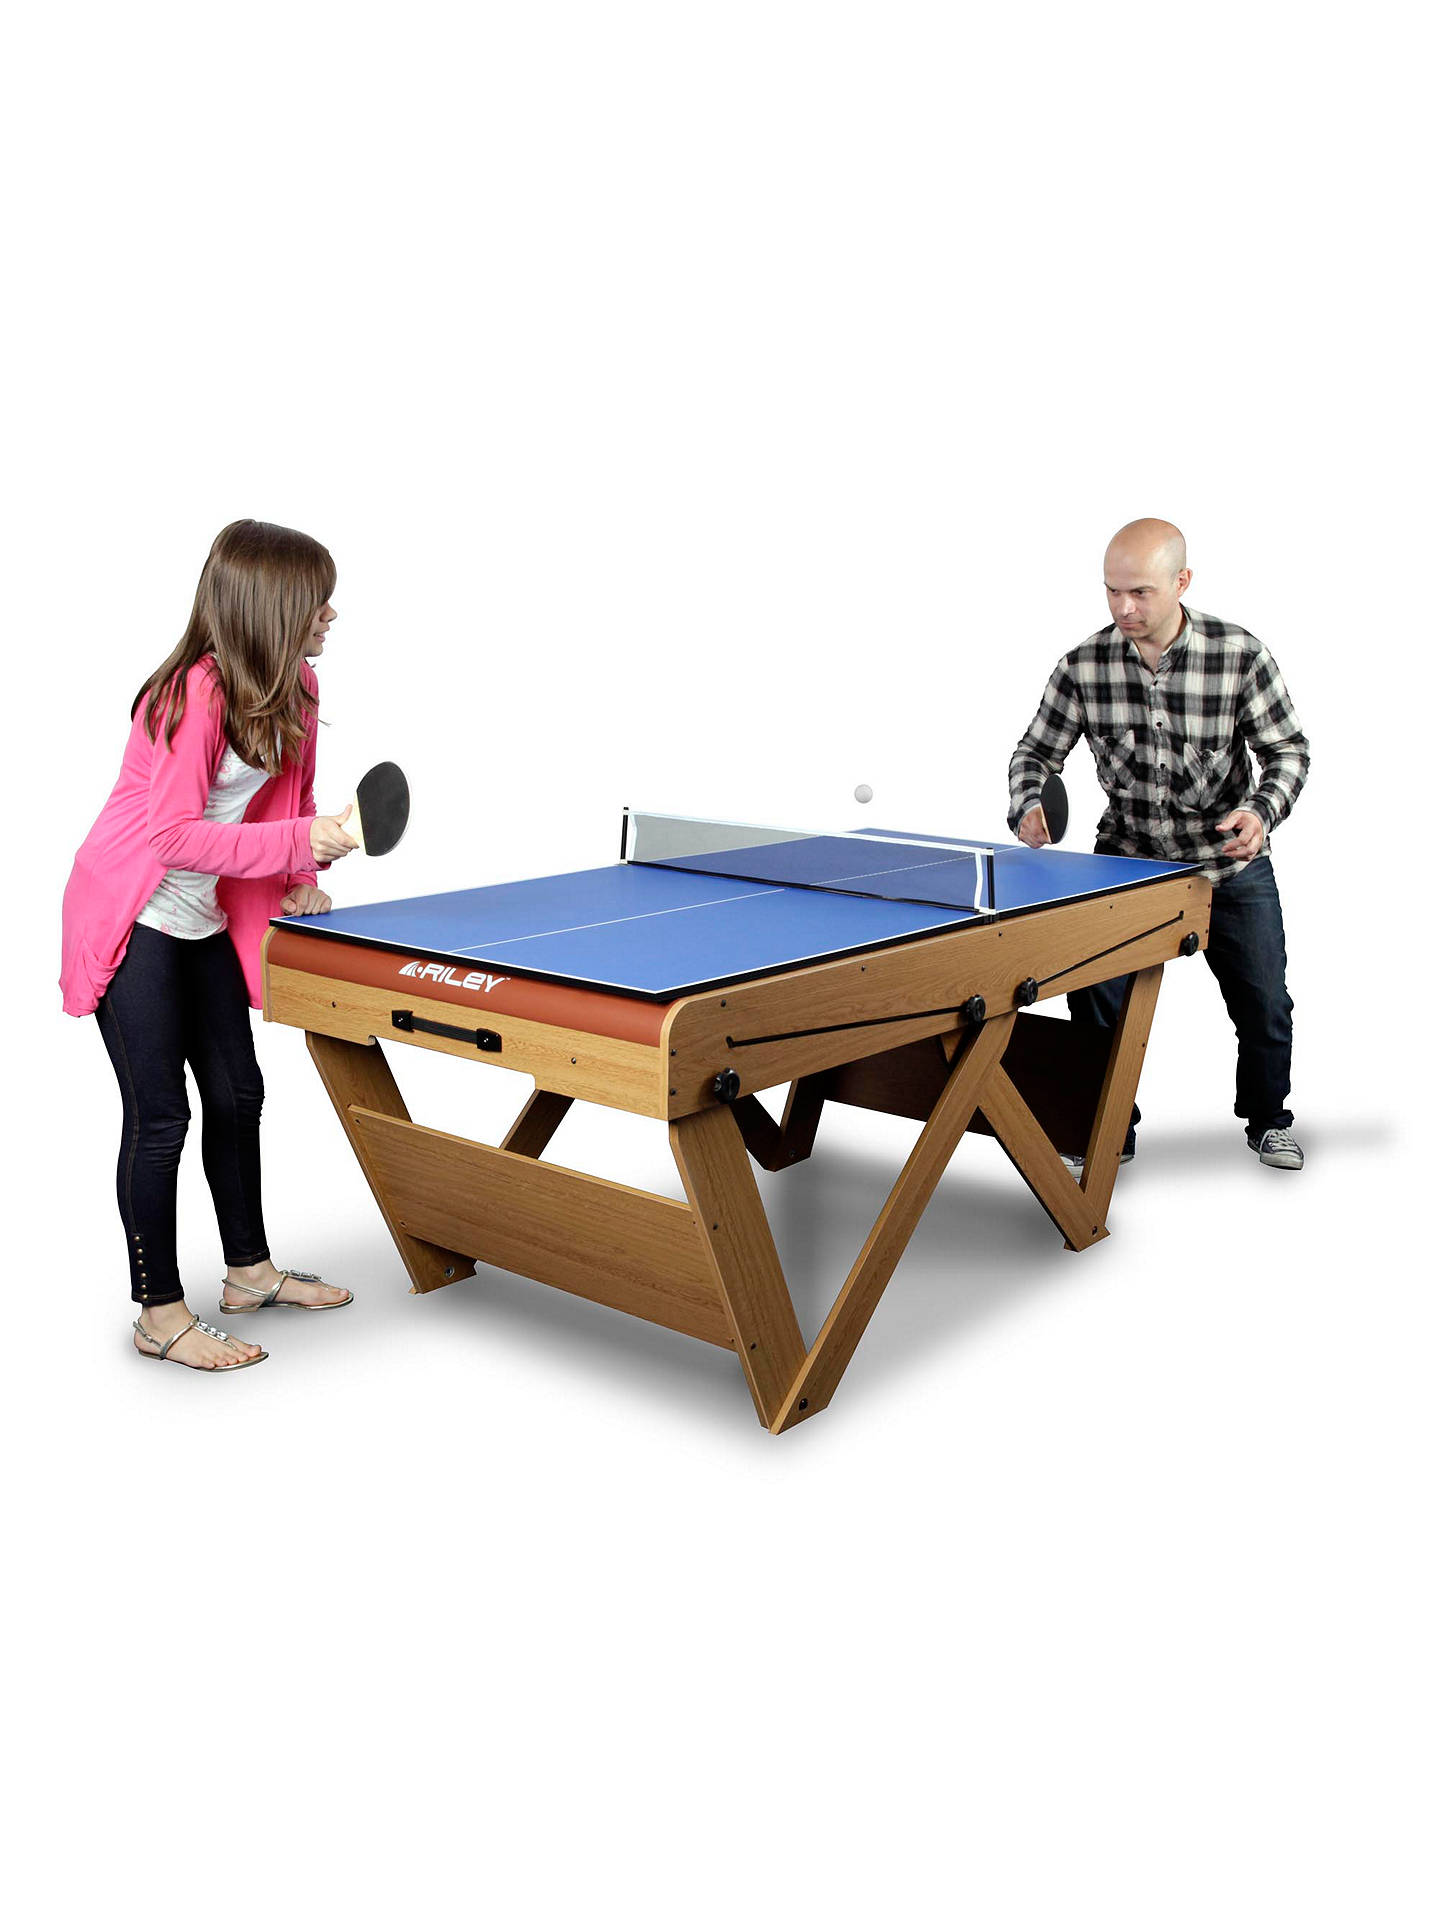 BuyBCE 6ft Deluxe Pool and Table Tennis Table Online at johnlewis.com